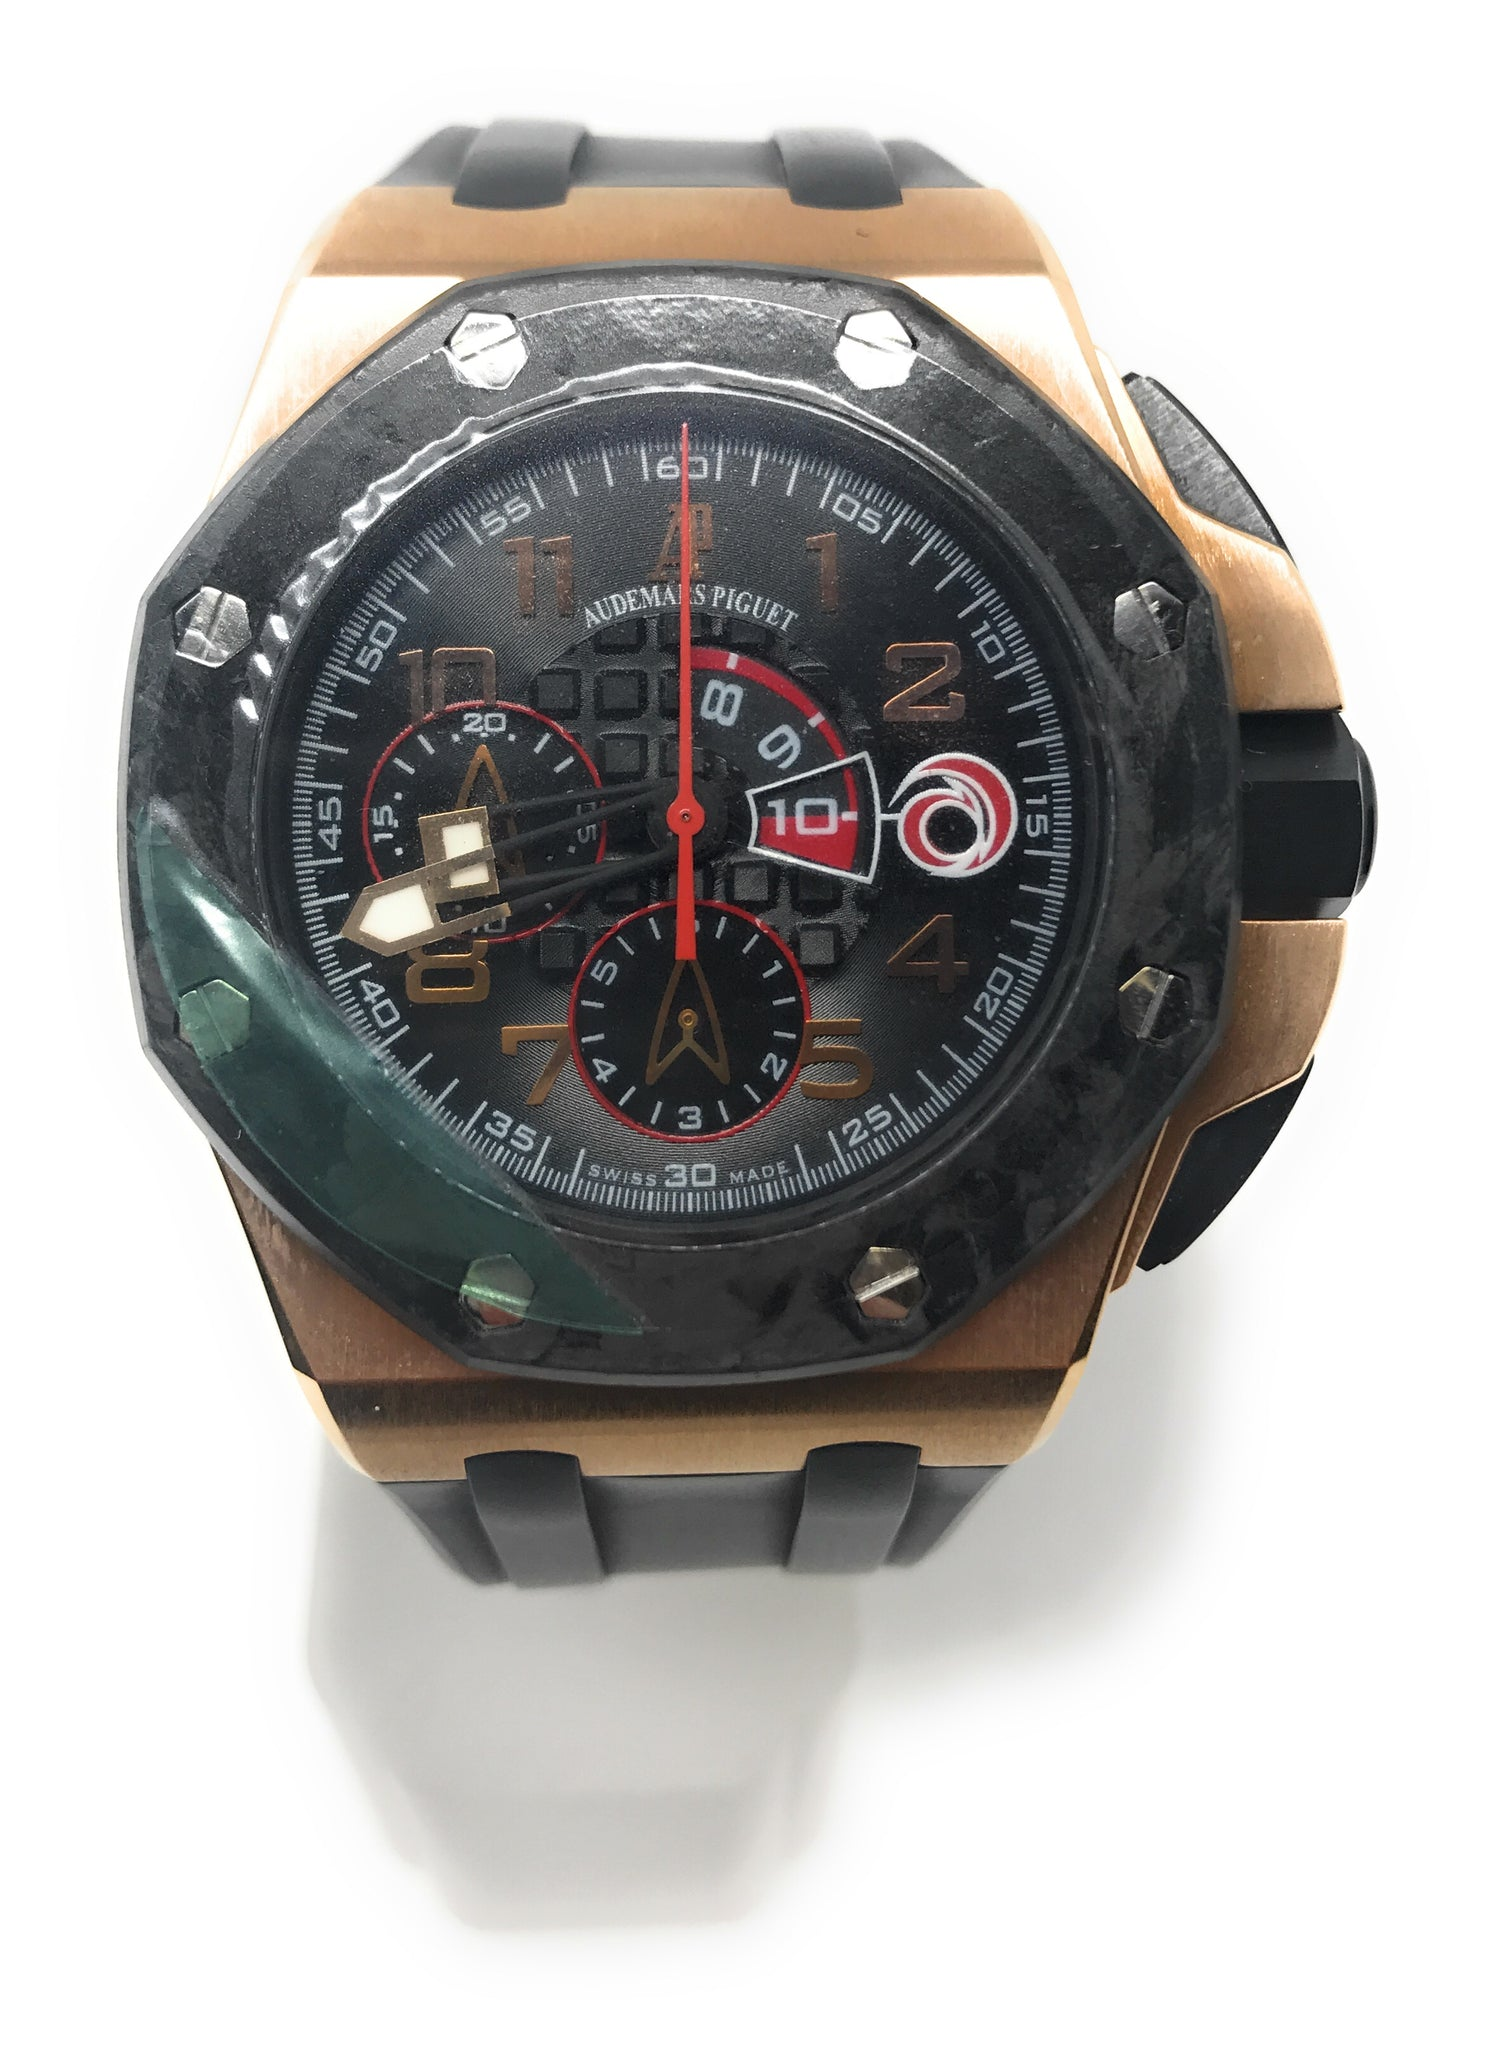 WTC026 Audemars Piguet Royal Oak Offshore Team Alinghi Limited Edition